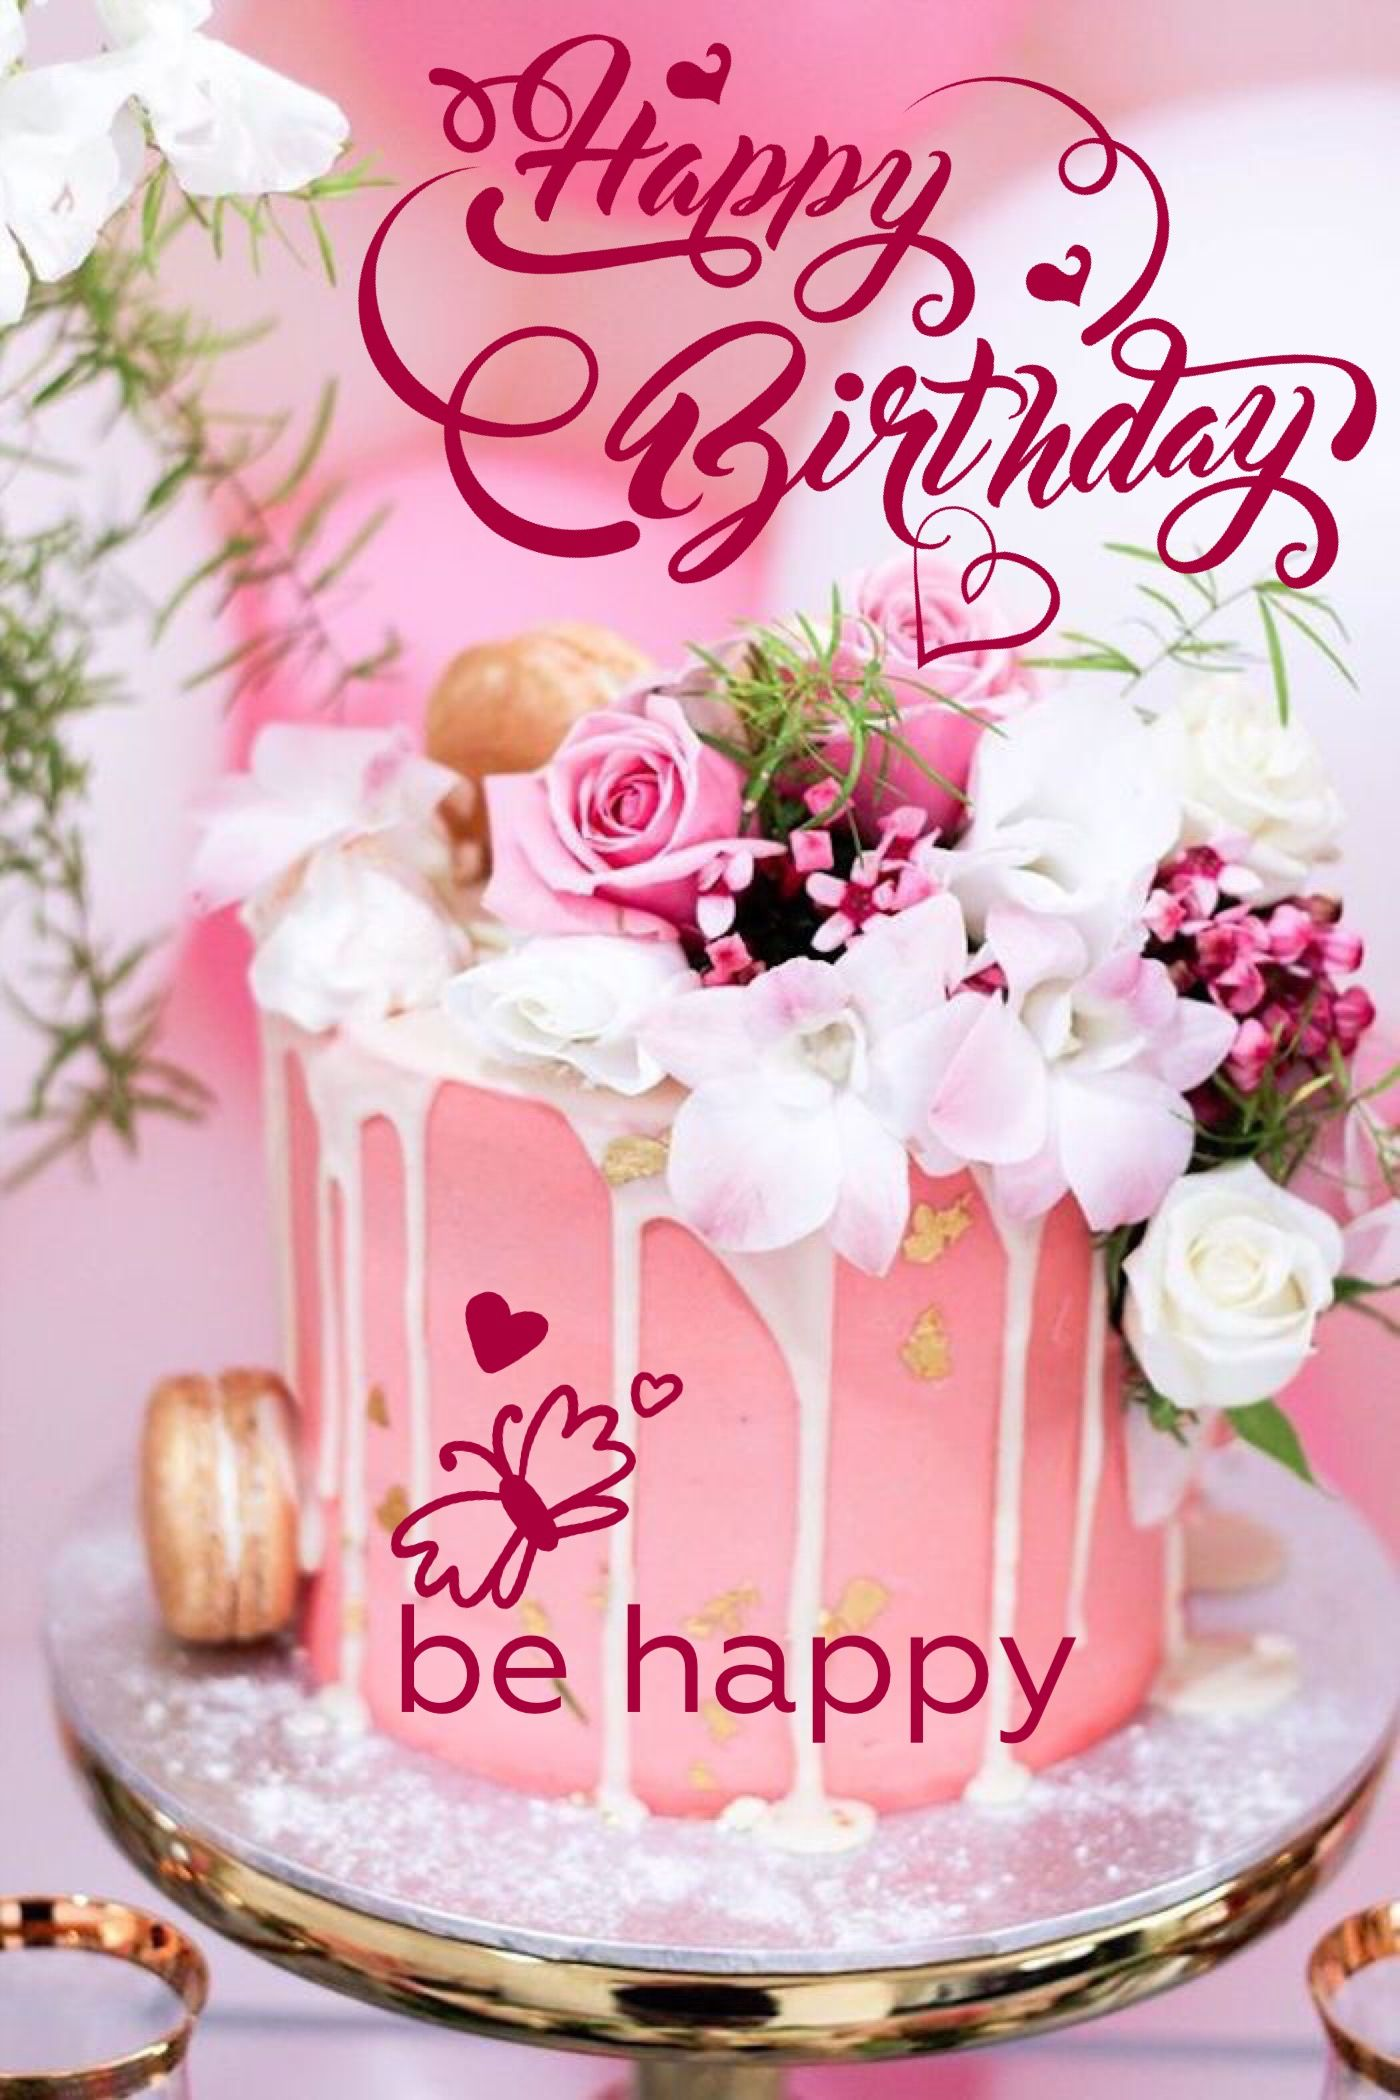 Pleasing Happy Birthday Happy Birthday Cake Images Happy Birthday Cakes Funny Birthday Cards Online Fluifree Goldxyz